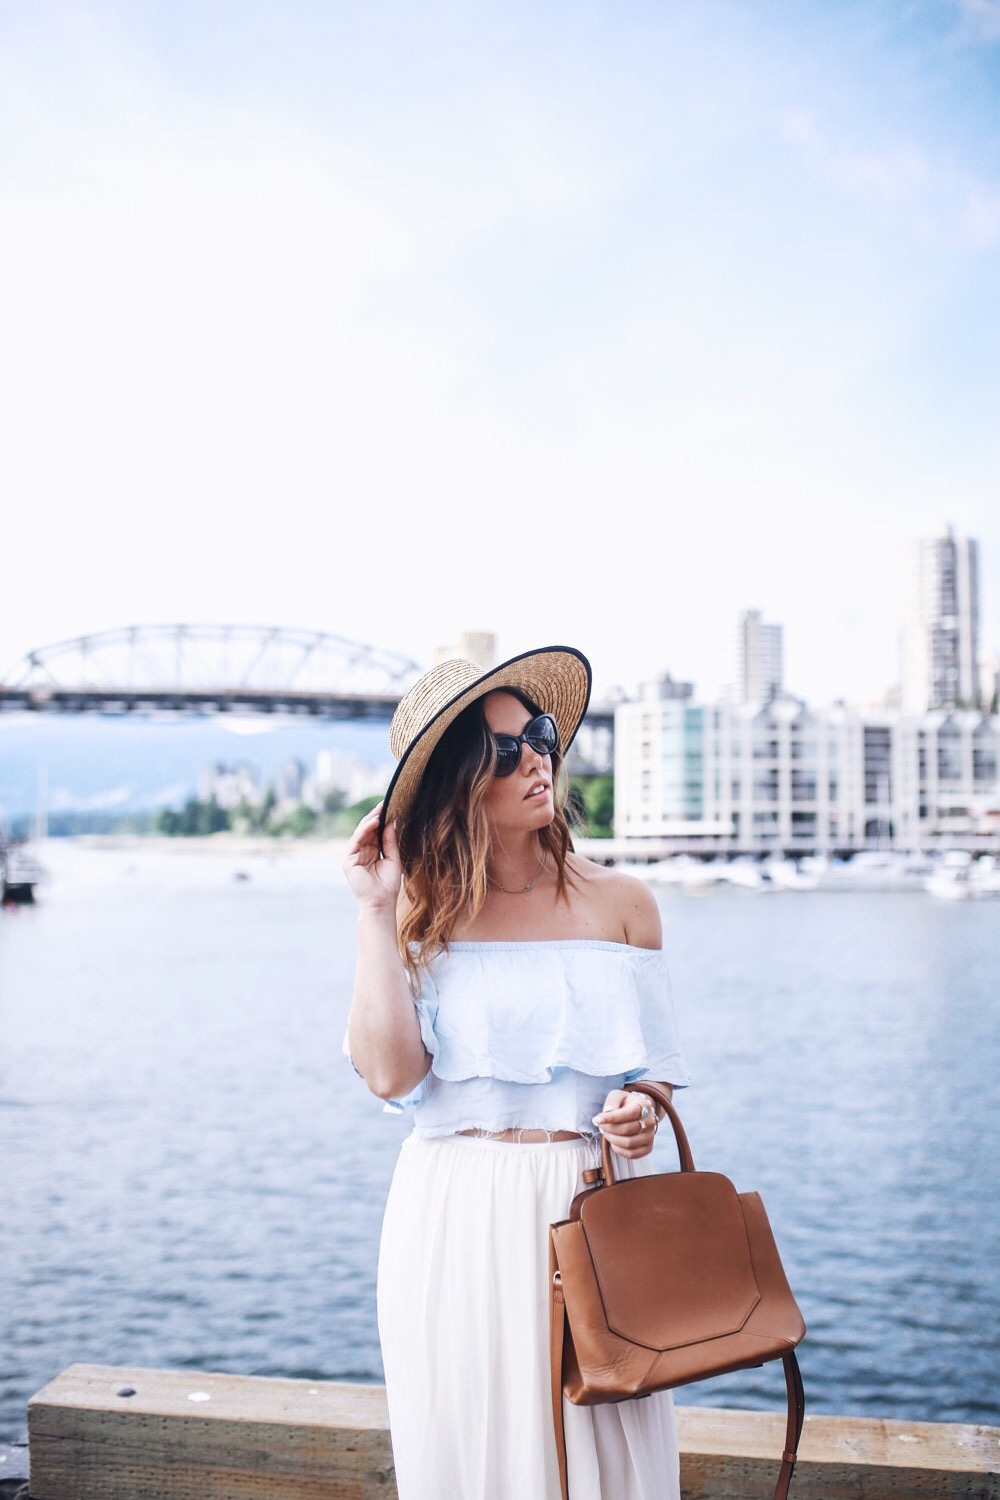 Summer outfit ideas in aritzia by To Vogue or Bust